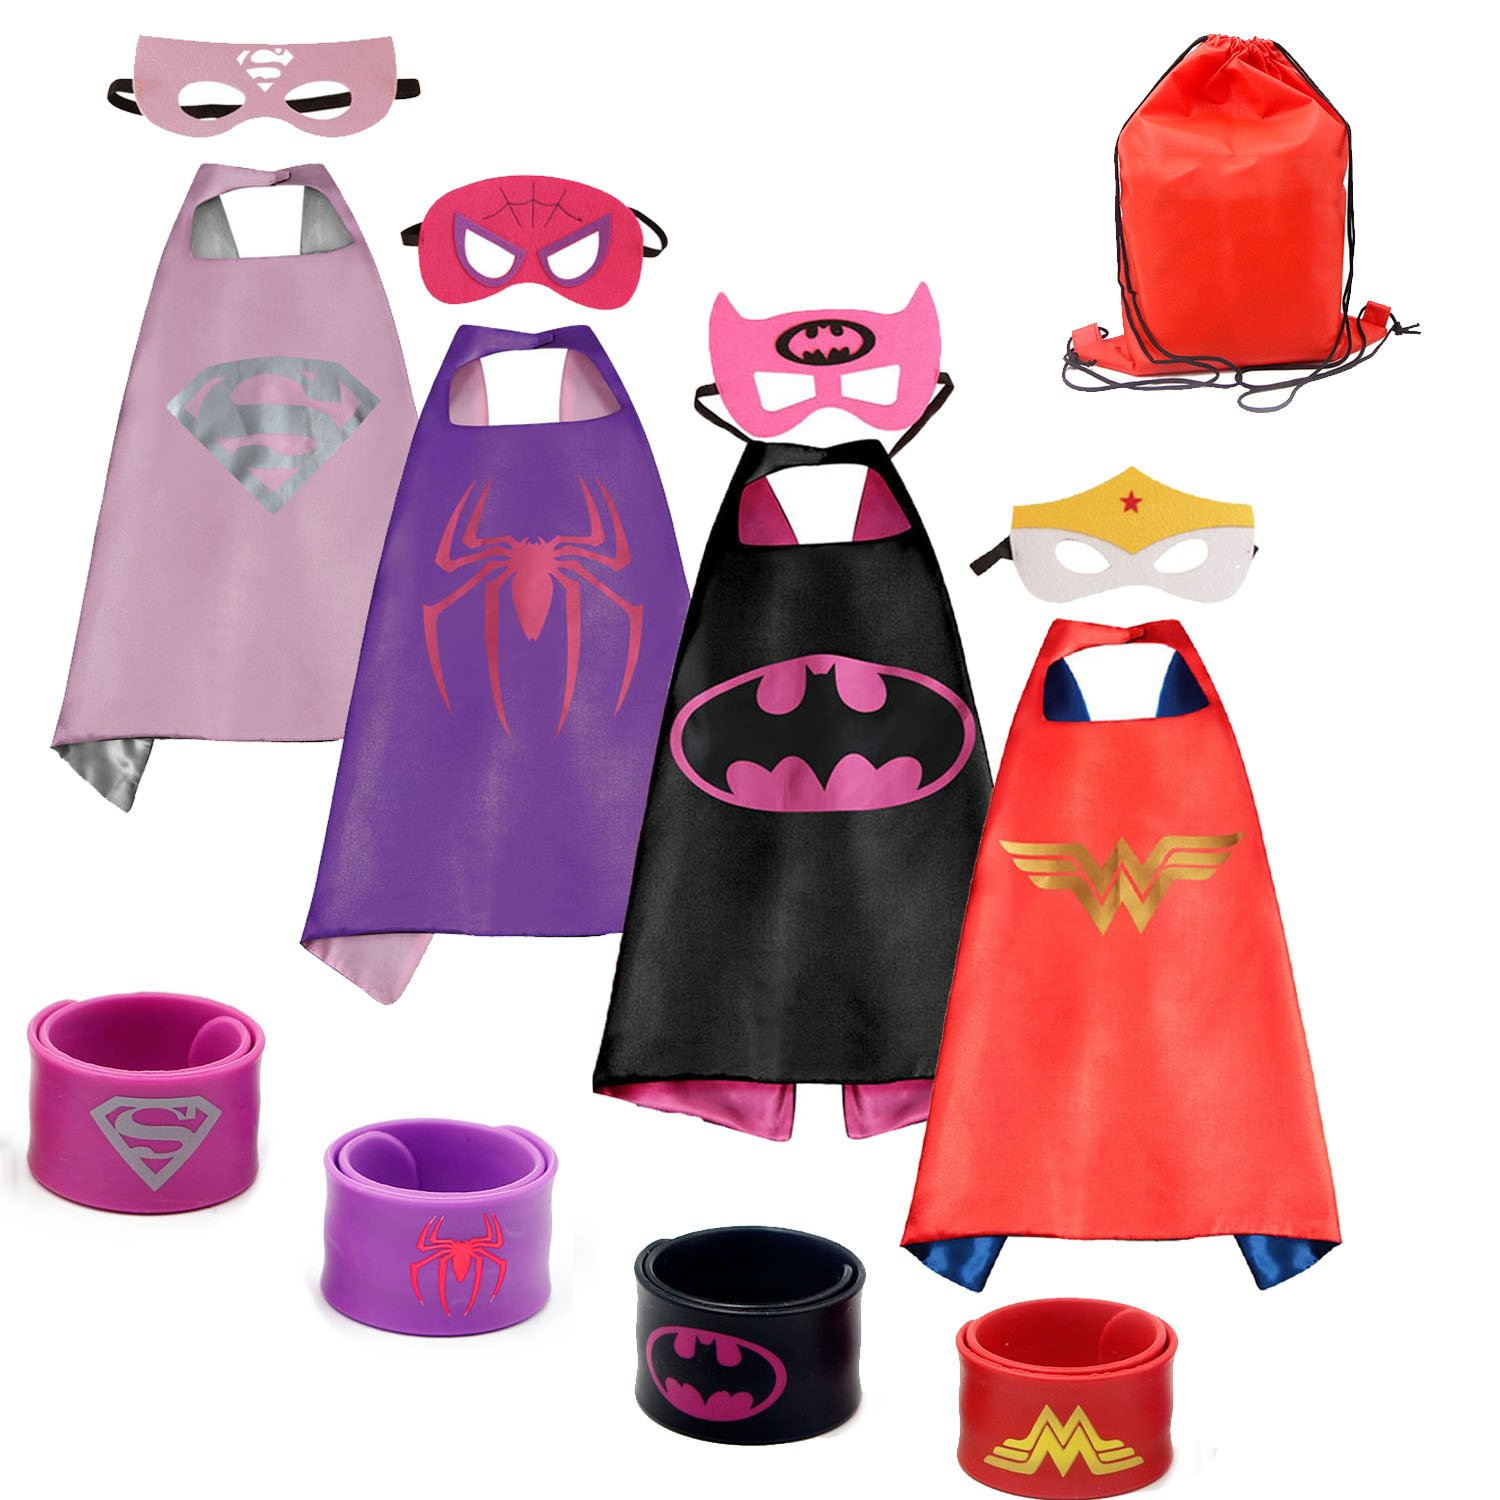 Dress up Costume Cape and Mask Set with Drawstring Backpack for Kids, Birthday Party Children